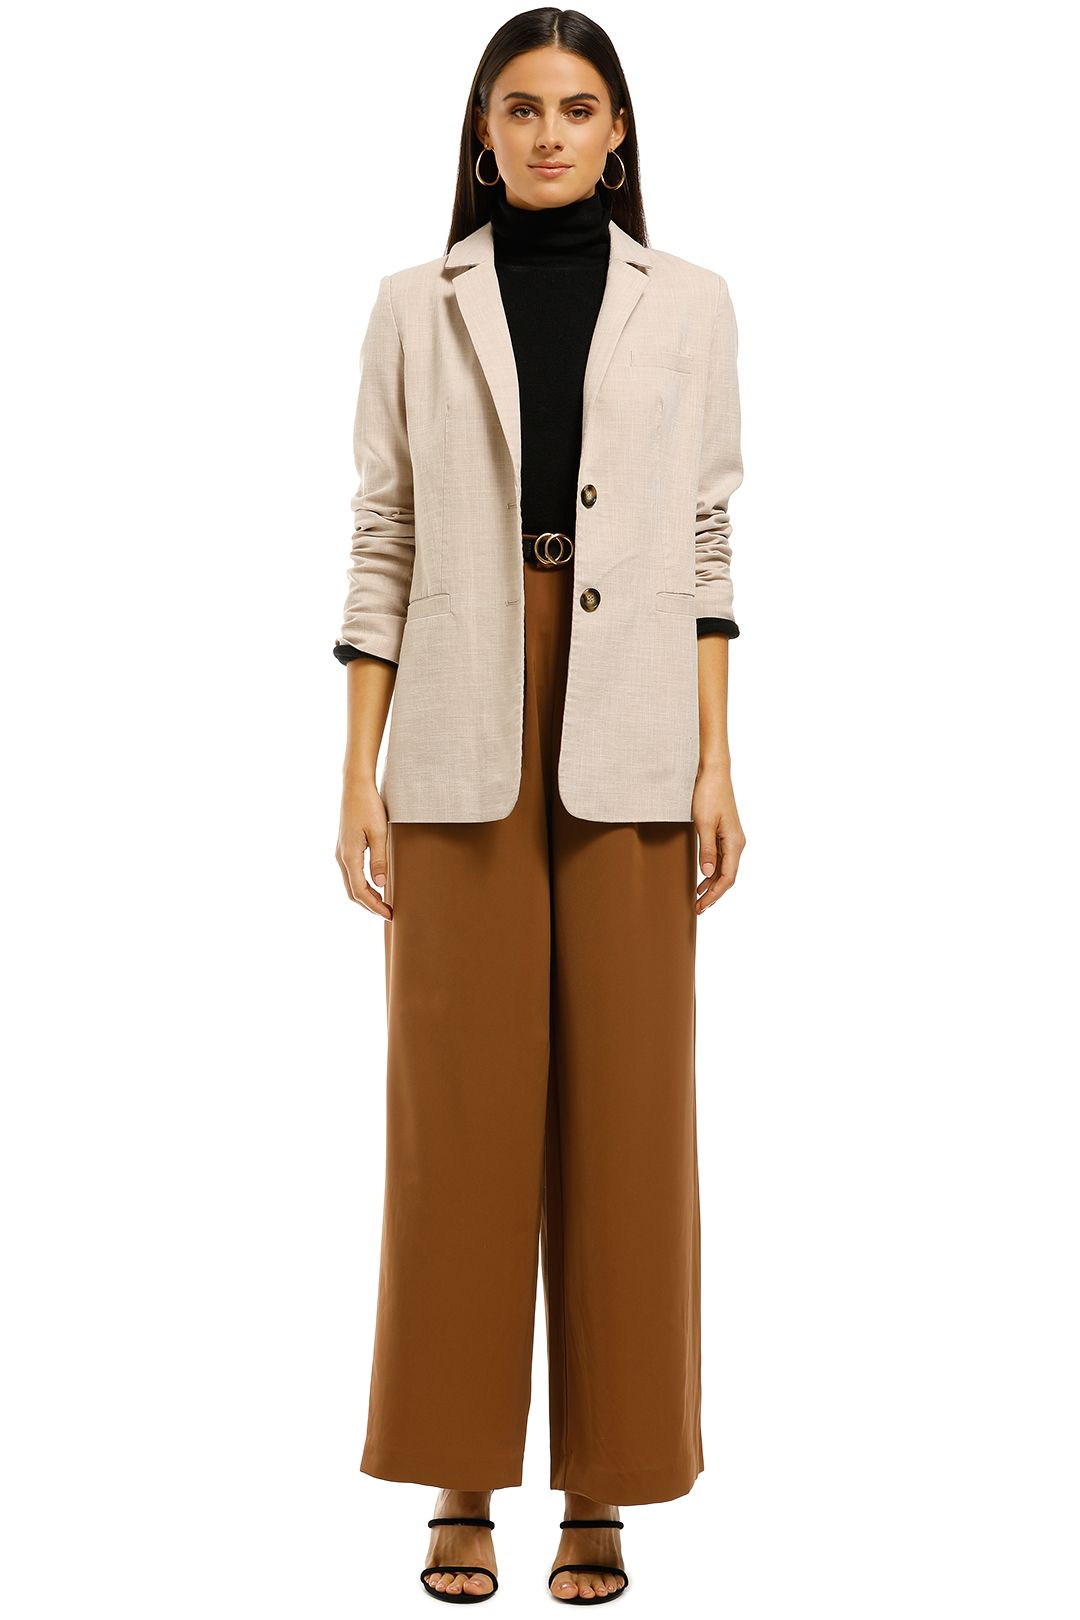 Friend of Audrey - Peta Textured Blazer - Beige - Front